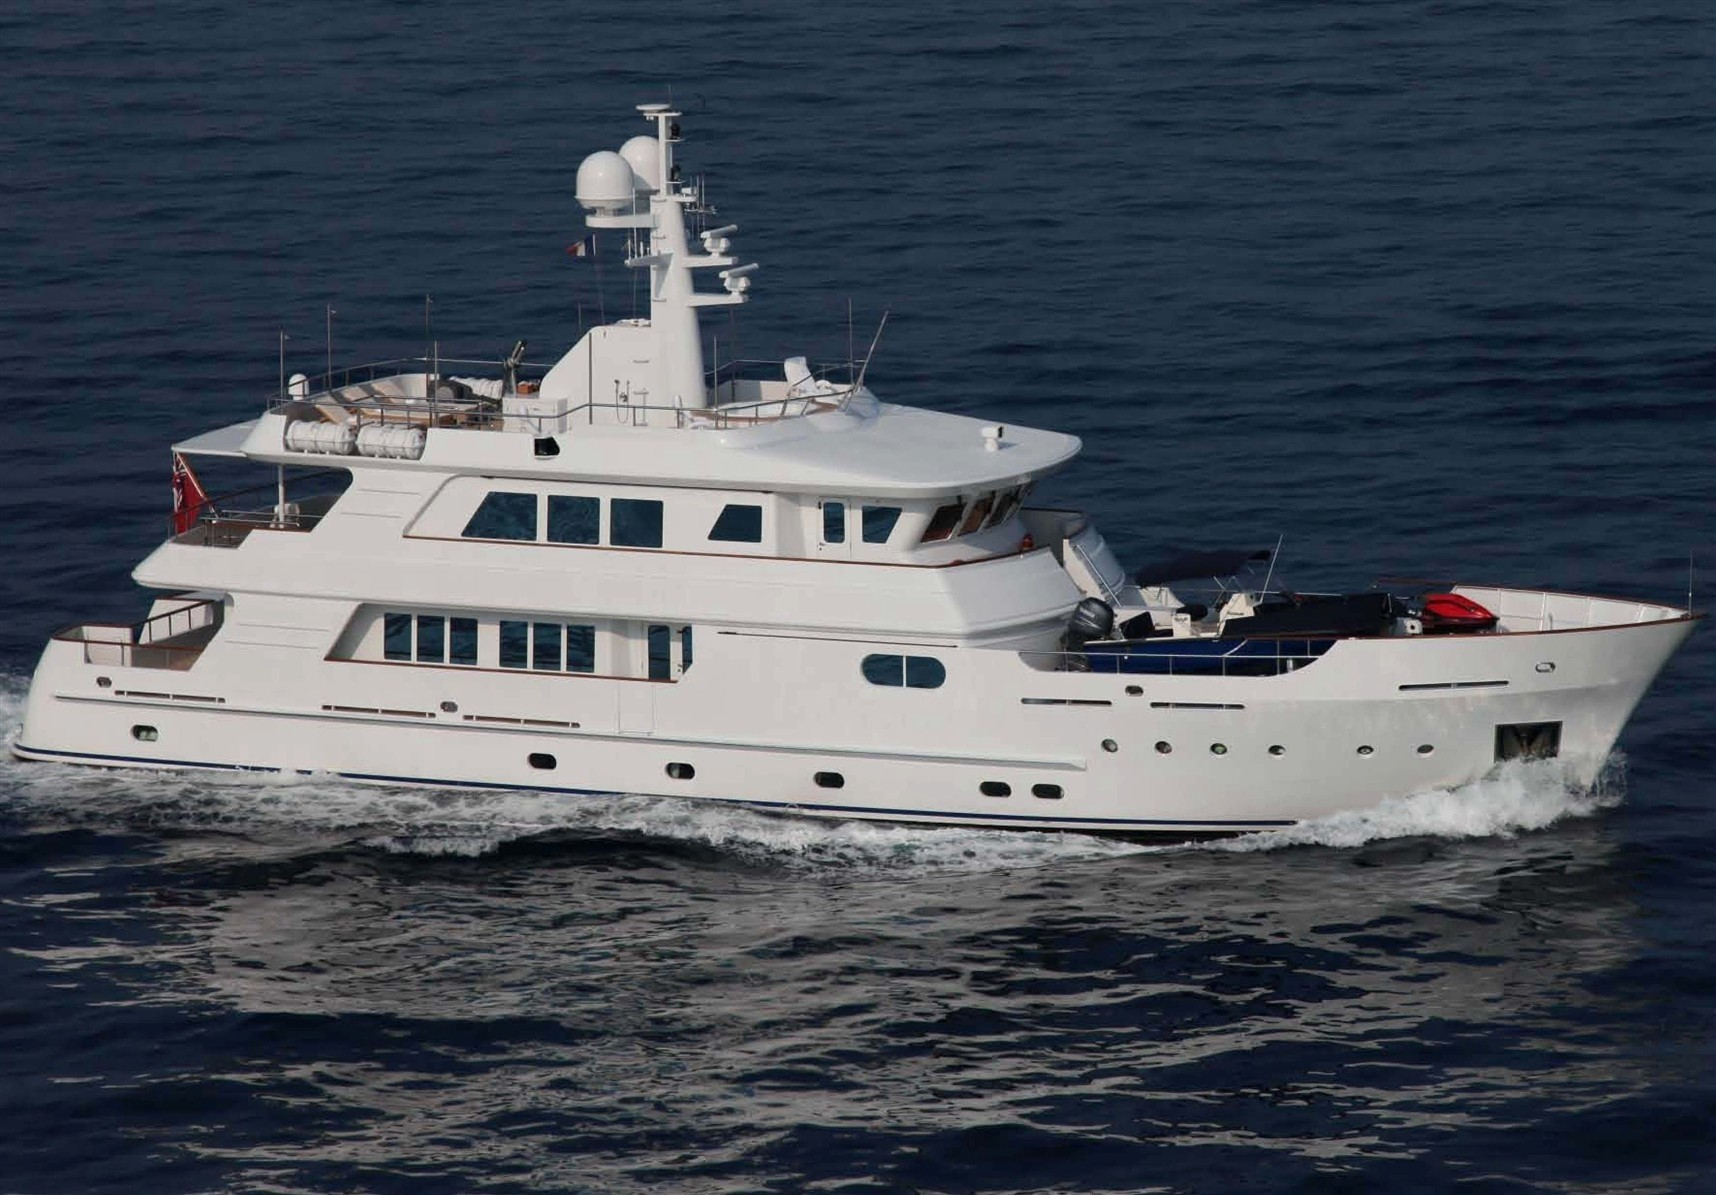 The 34m Yacht RELENTLESS